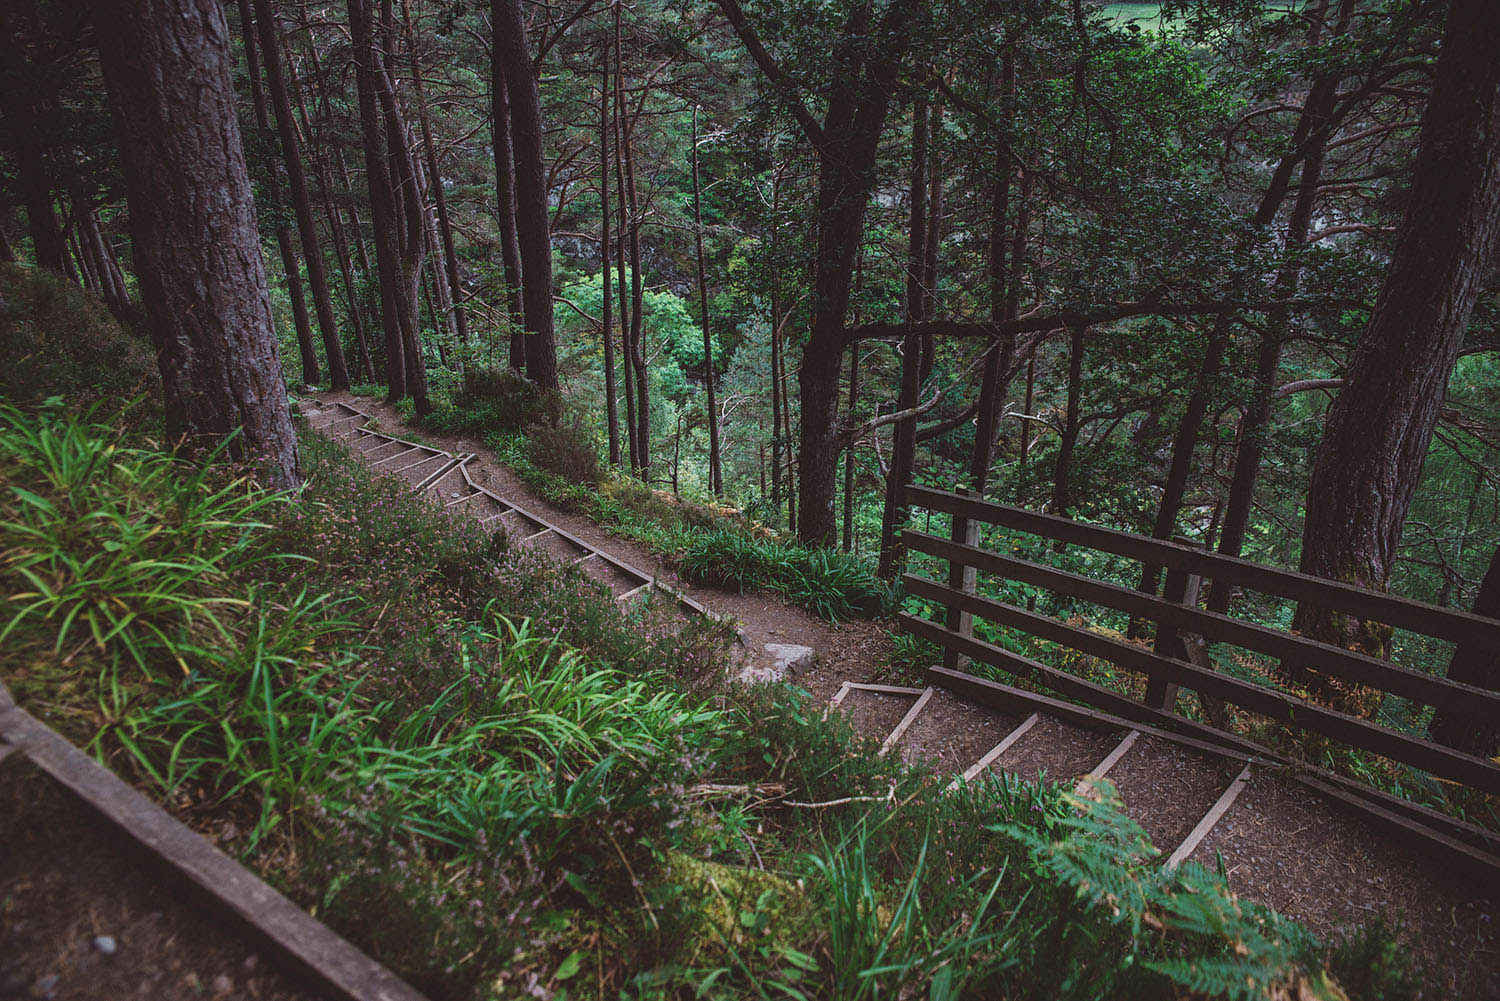 Path with stairs in Scottish wood